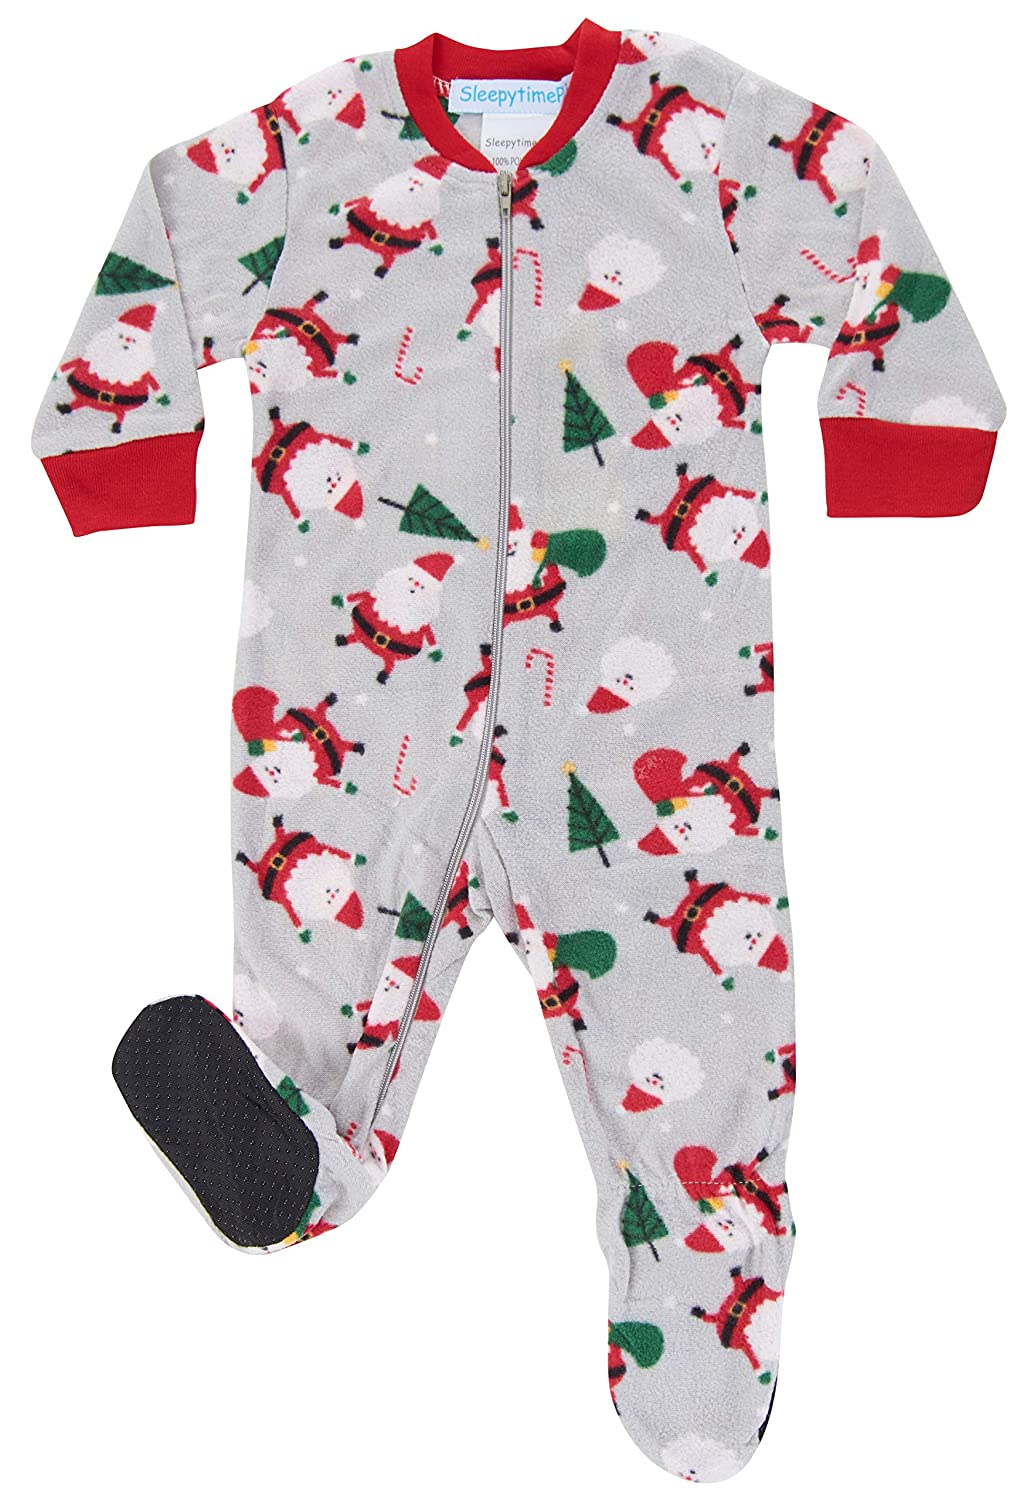 SleepytimePJs Holiday Infant Full-Zip Onesie Baby Pajamas PJs